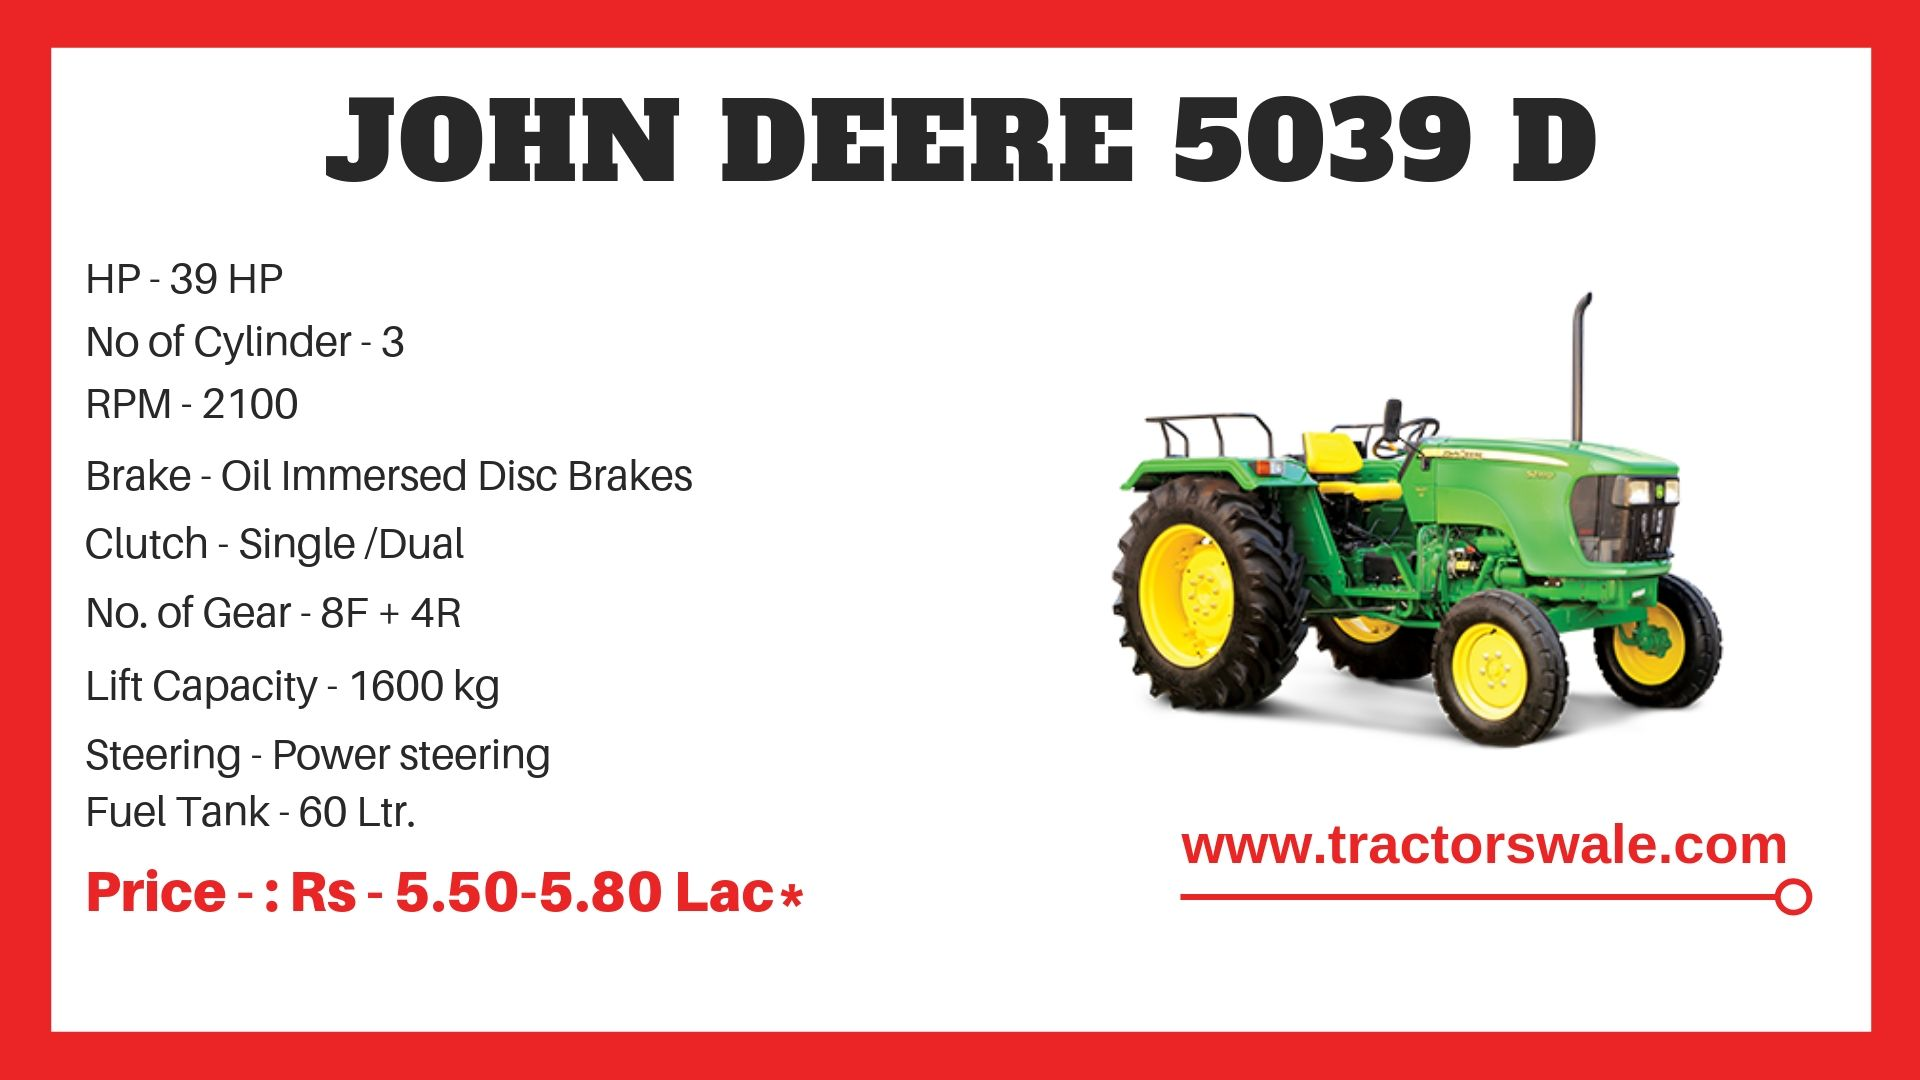 John Deere 5039 D Tractor Specifications